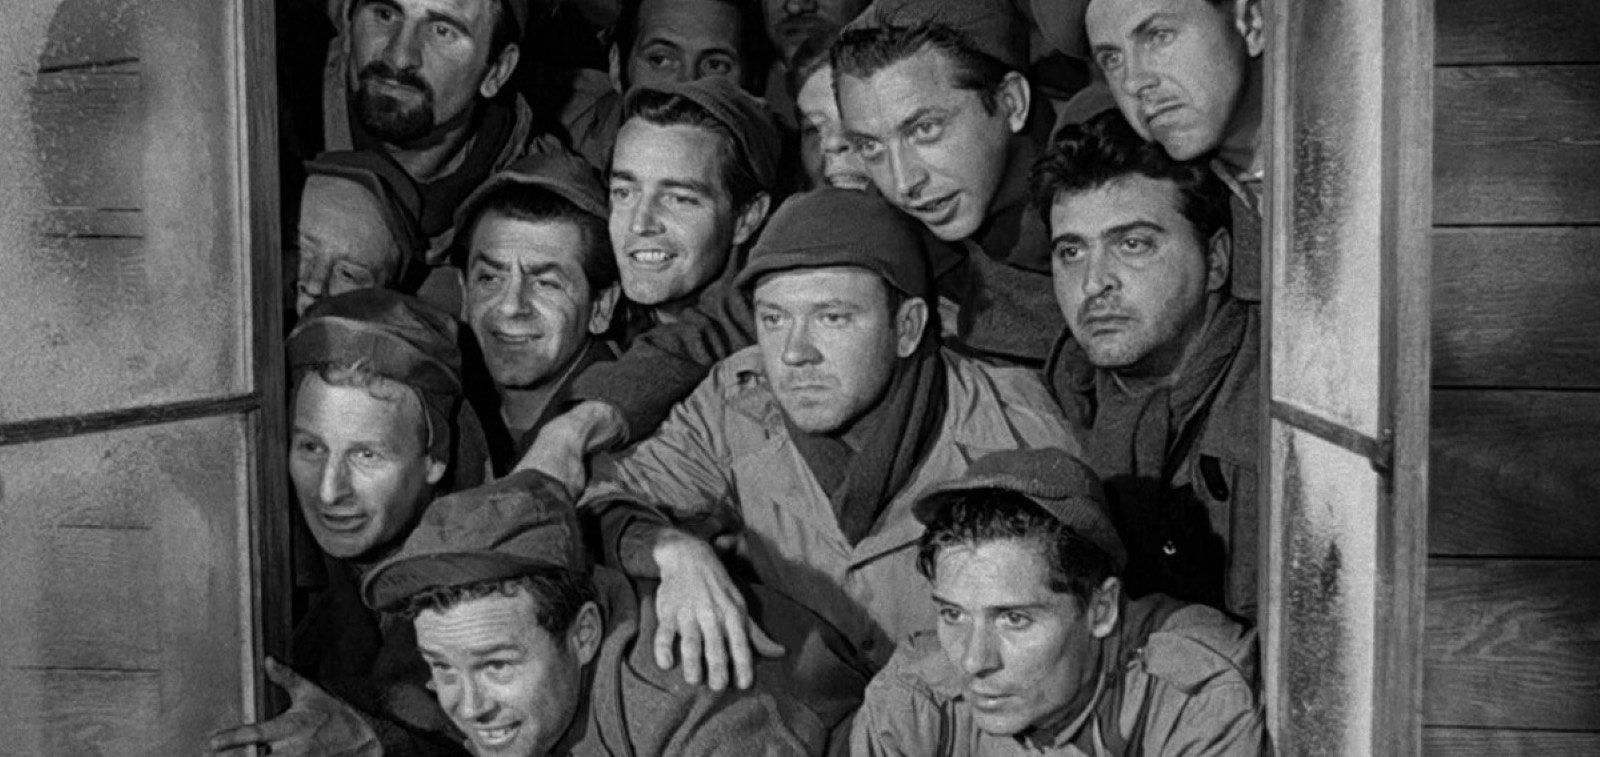 The inmate characters of Stalag 17 crowd together at a window